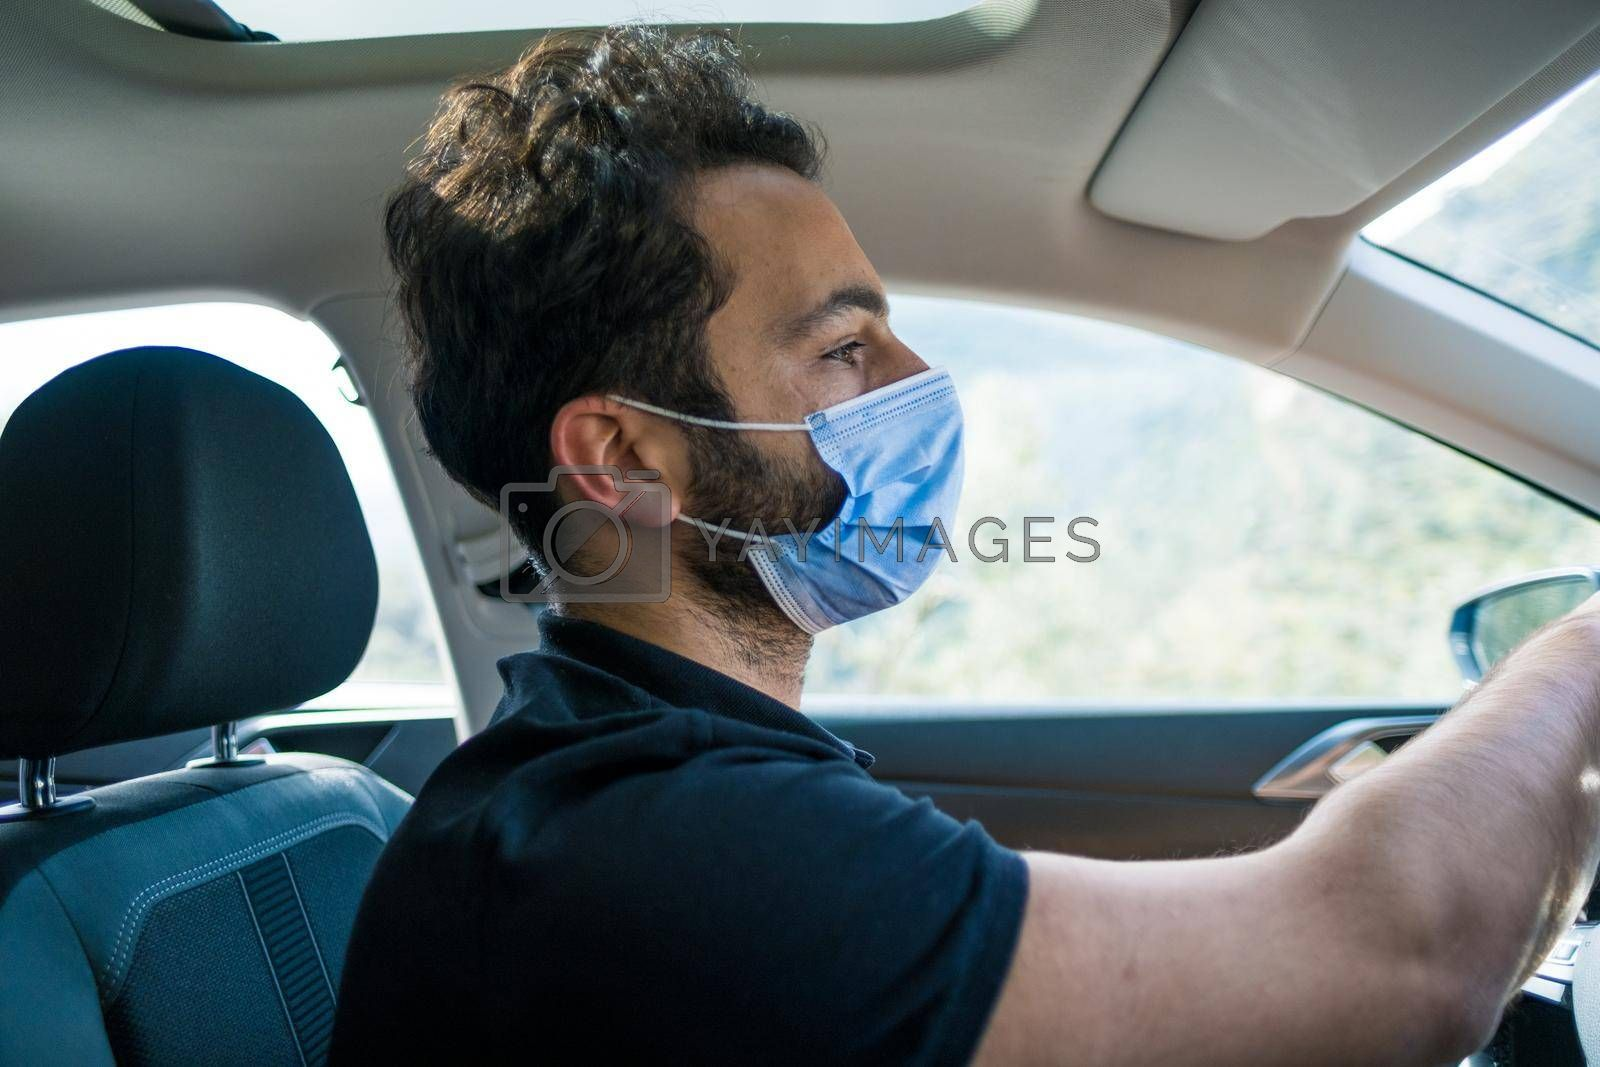 a male person holding steering wheel and driving in a focused way